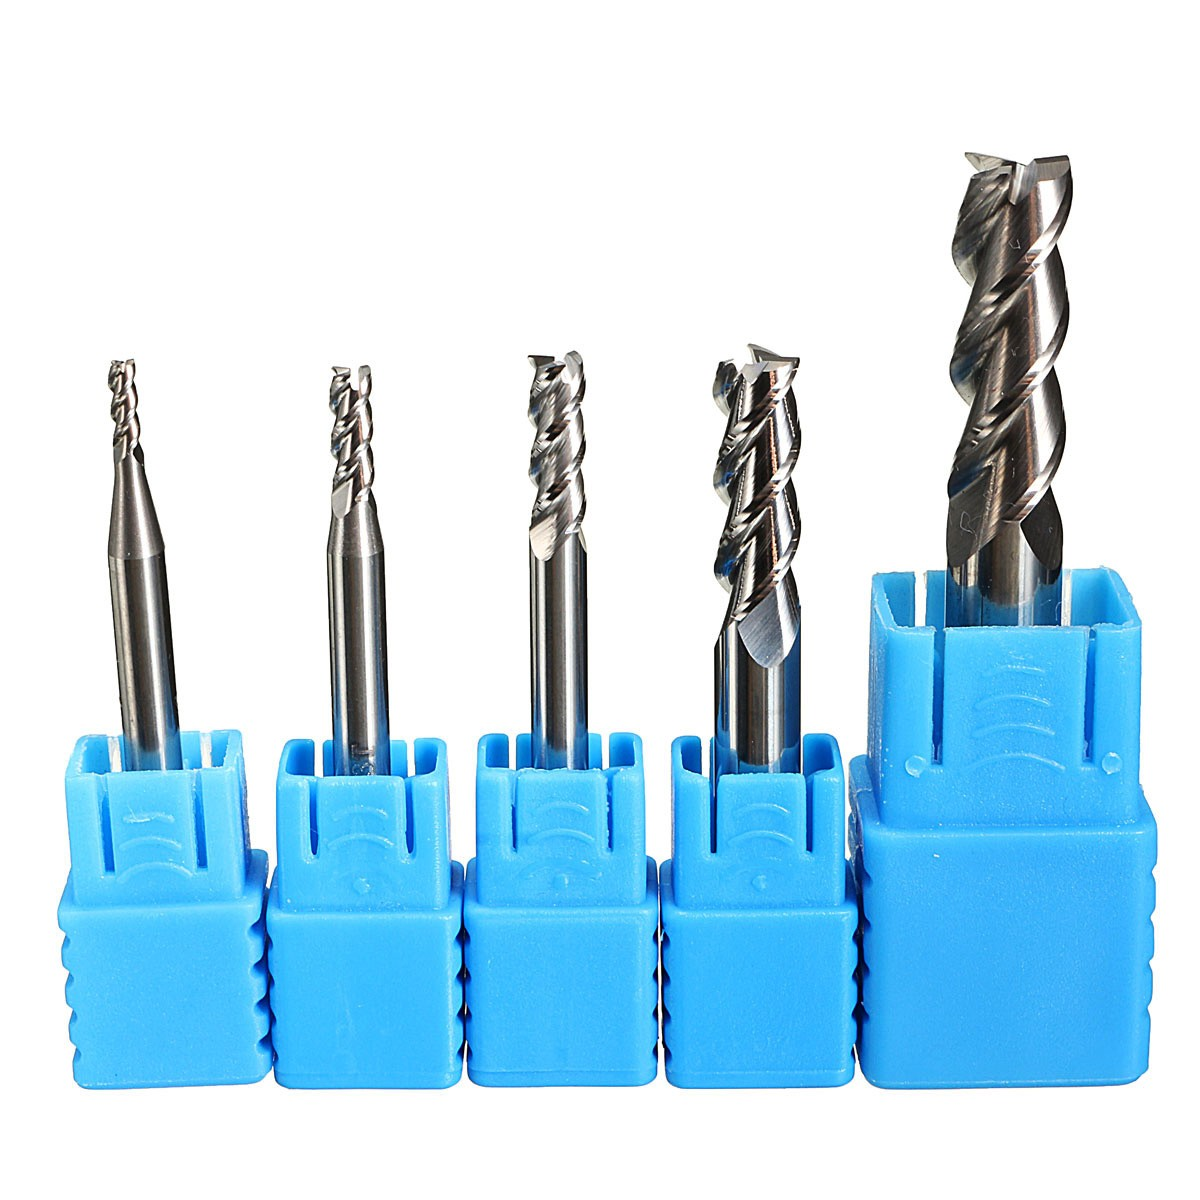 5Pcs/set 3 Flute 2 3 4 6 8mm Aluminium End Mill Cutter Tungsten Carbide Printed Cutter For CNC Milling Cutter yft 5pcs set tungsten carbide milling cutter 3 4 5 6 8mm 4 flute end mills cnc router bit for cutting metal tools